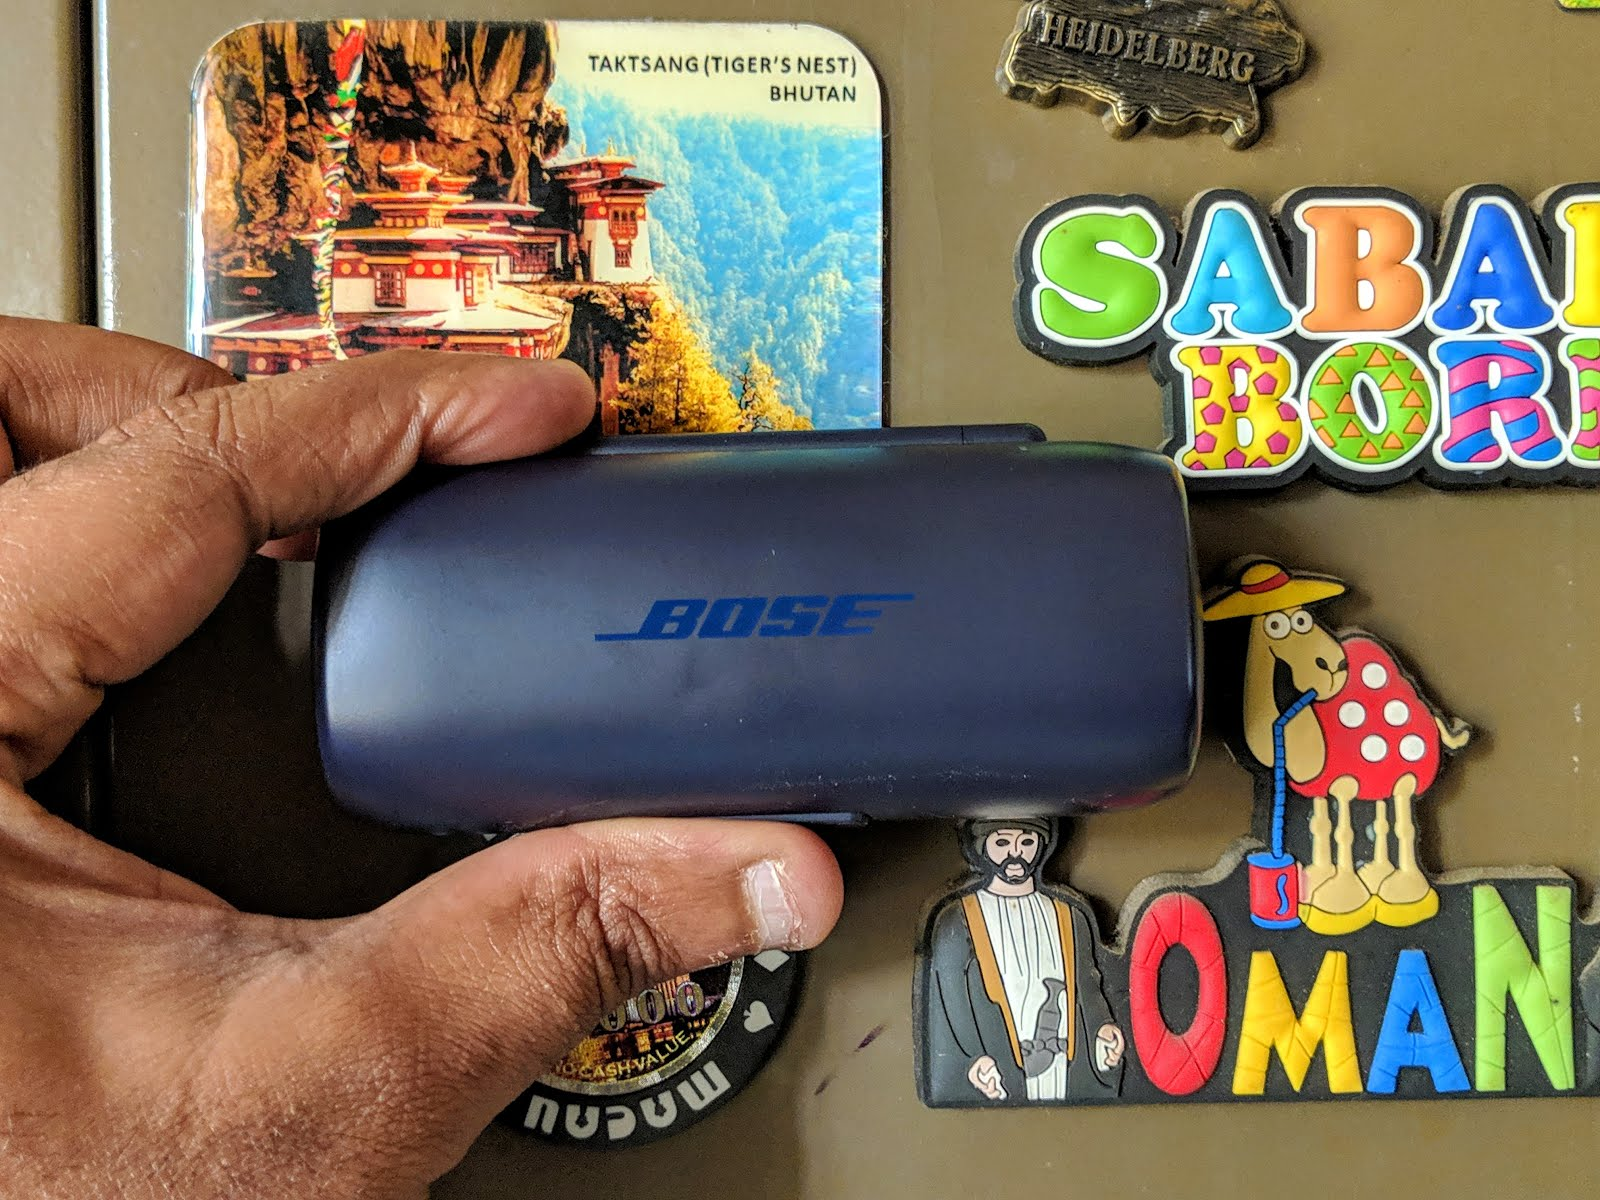 Bose earphones and the charging case